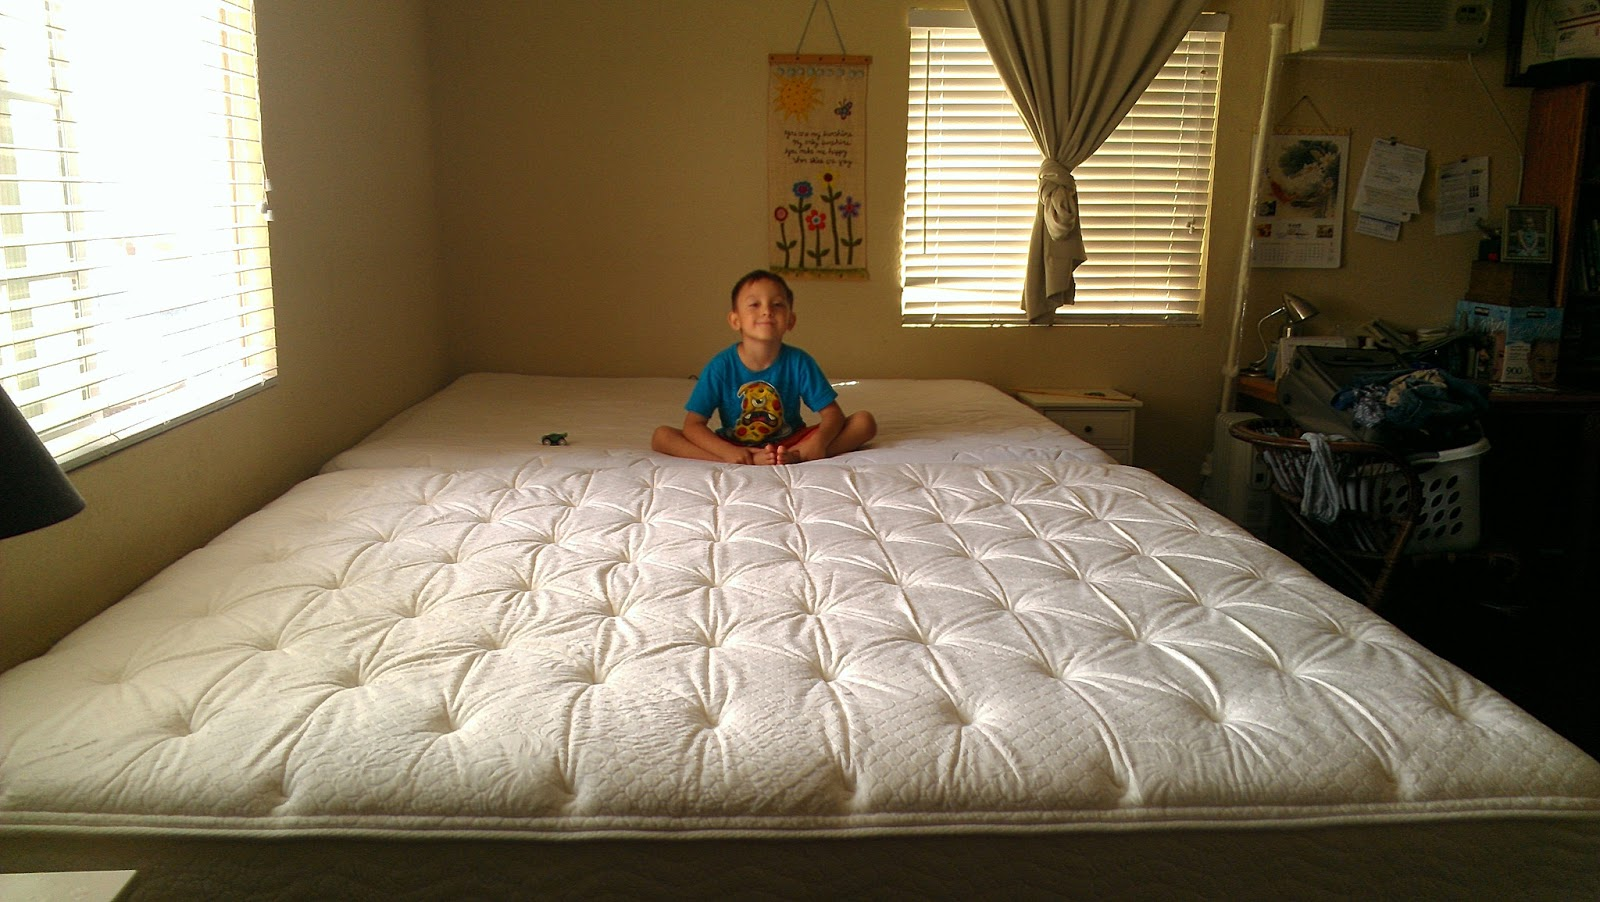 Our Huge New Family Bed